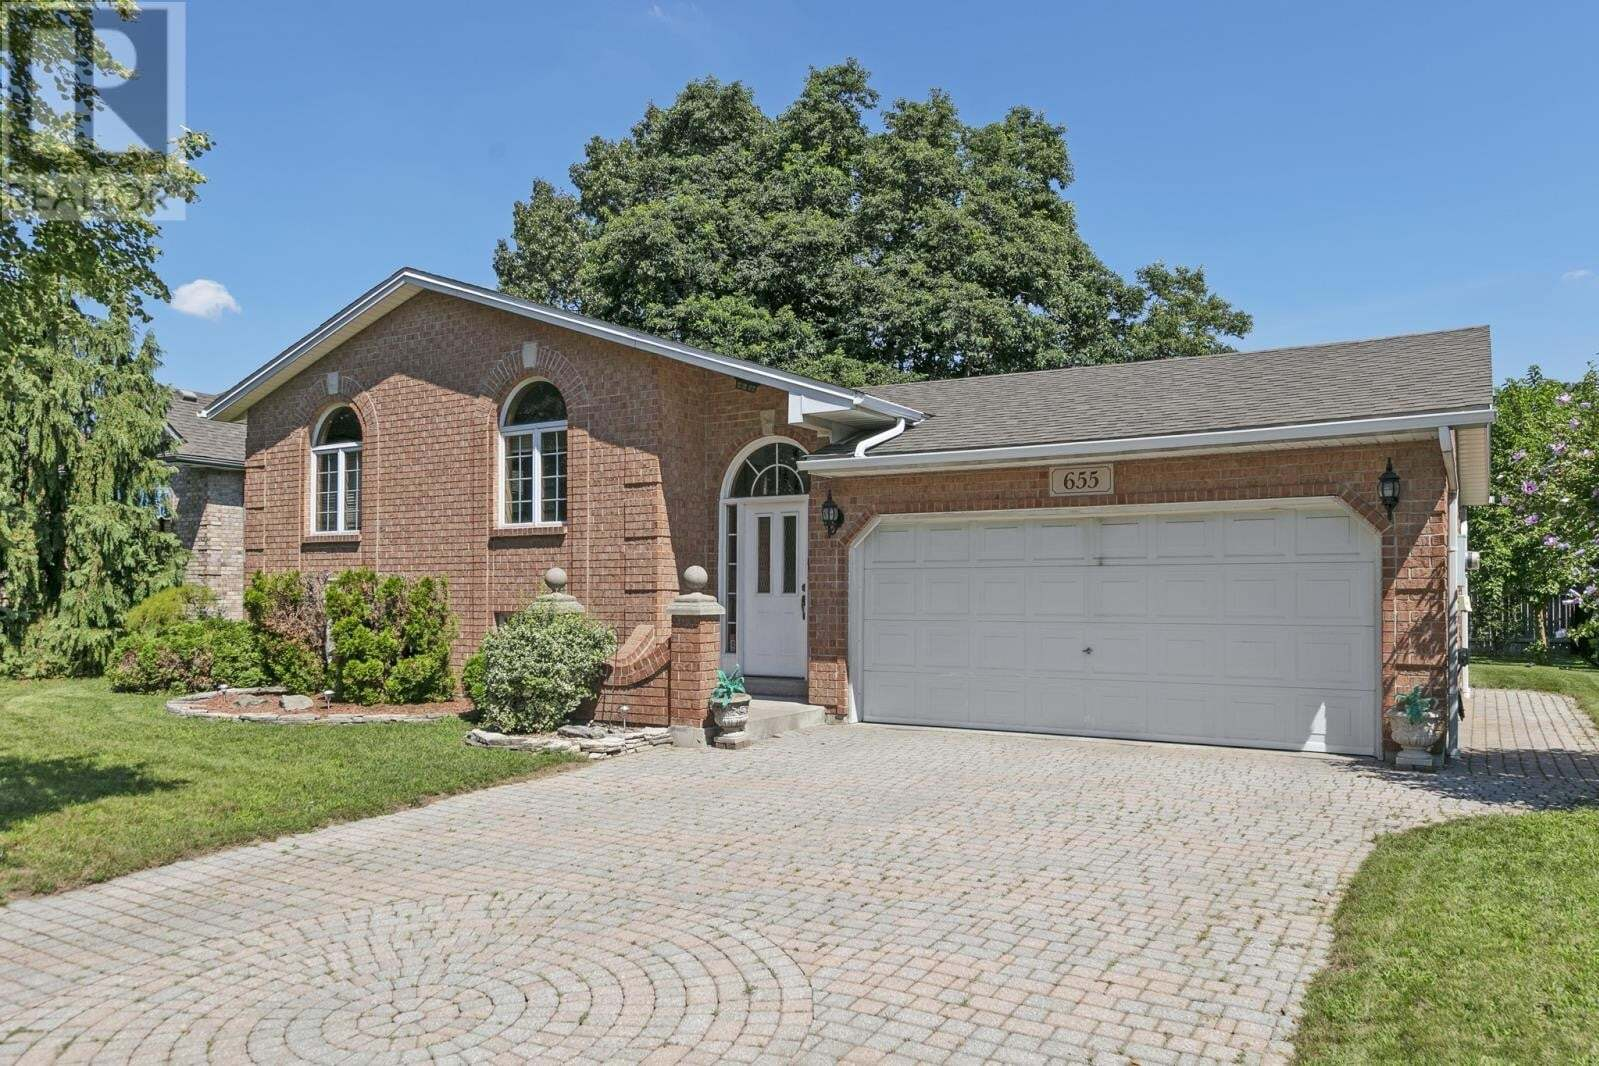 House for sale at 655 Smith  Lasalle Ontario - MLS: 20009982